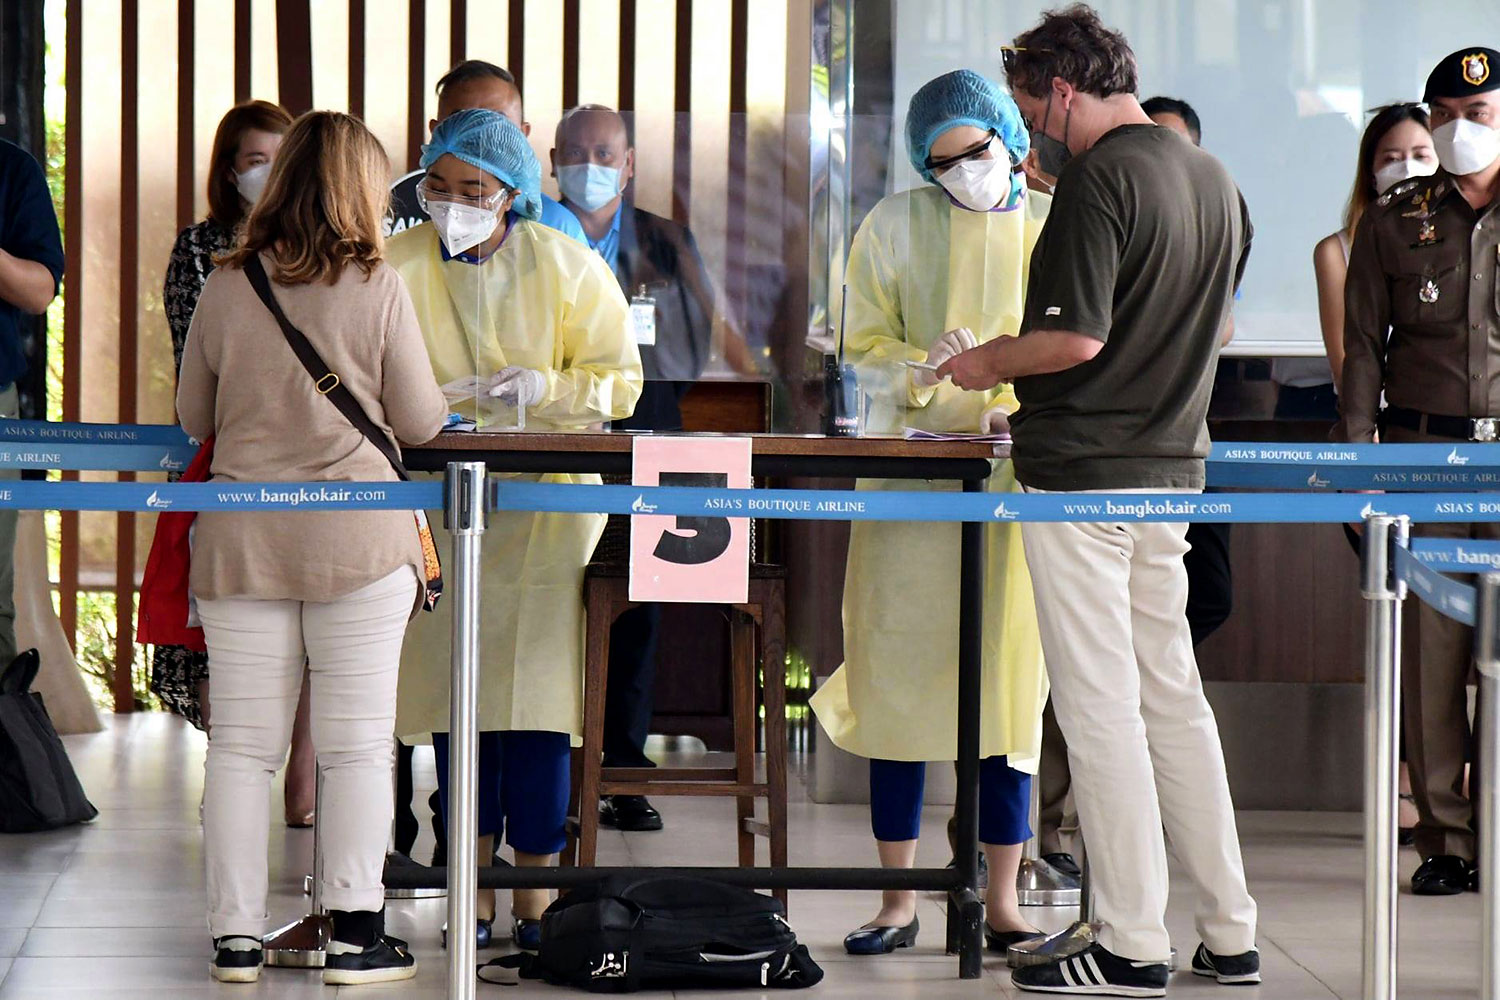 Foreign tourists undergo health checks upon arriving at Samui airport under the Samui Plus tourism scheme. (Ministry of Tourism and Sports photo)